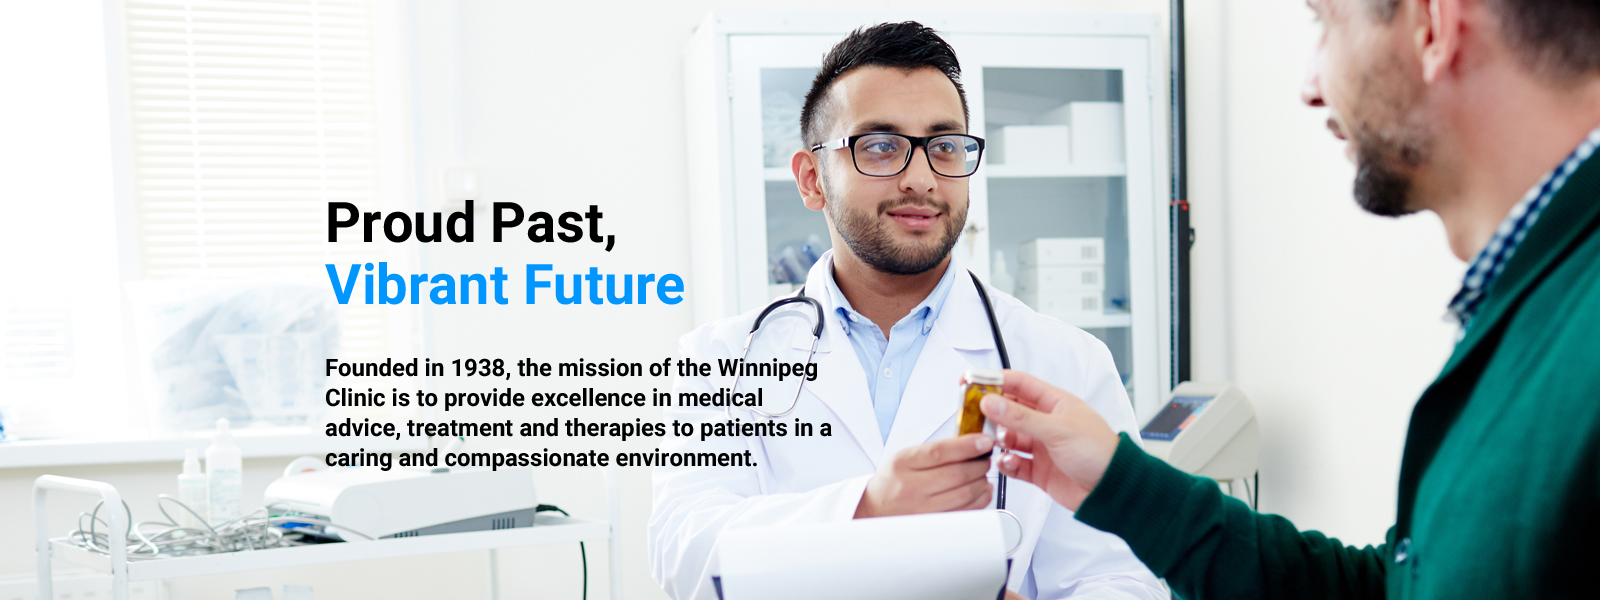 Winnipeg Clinic